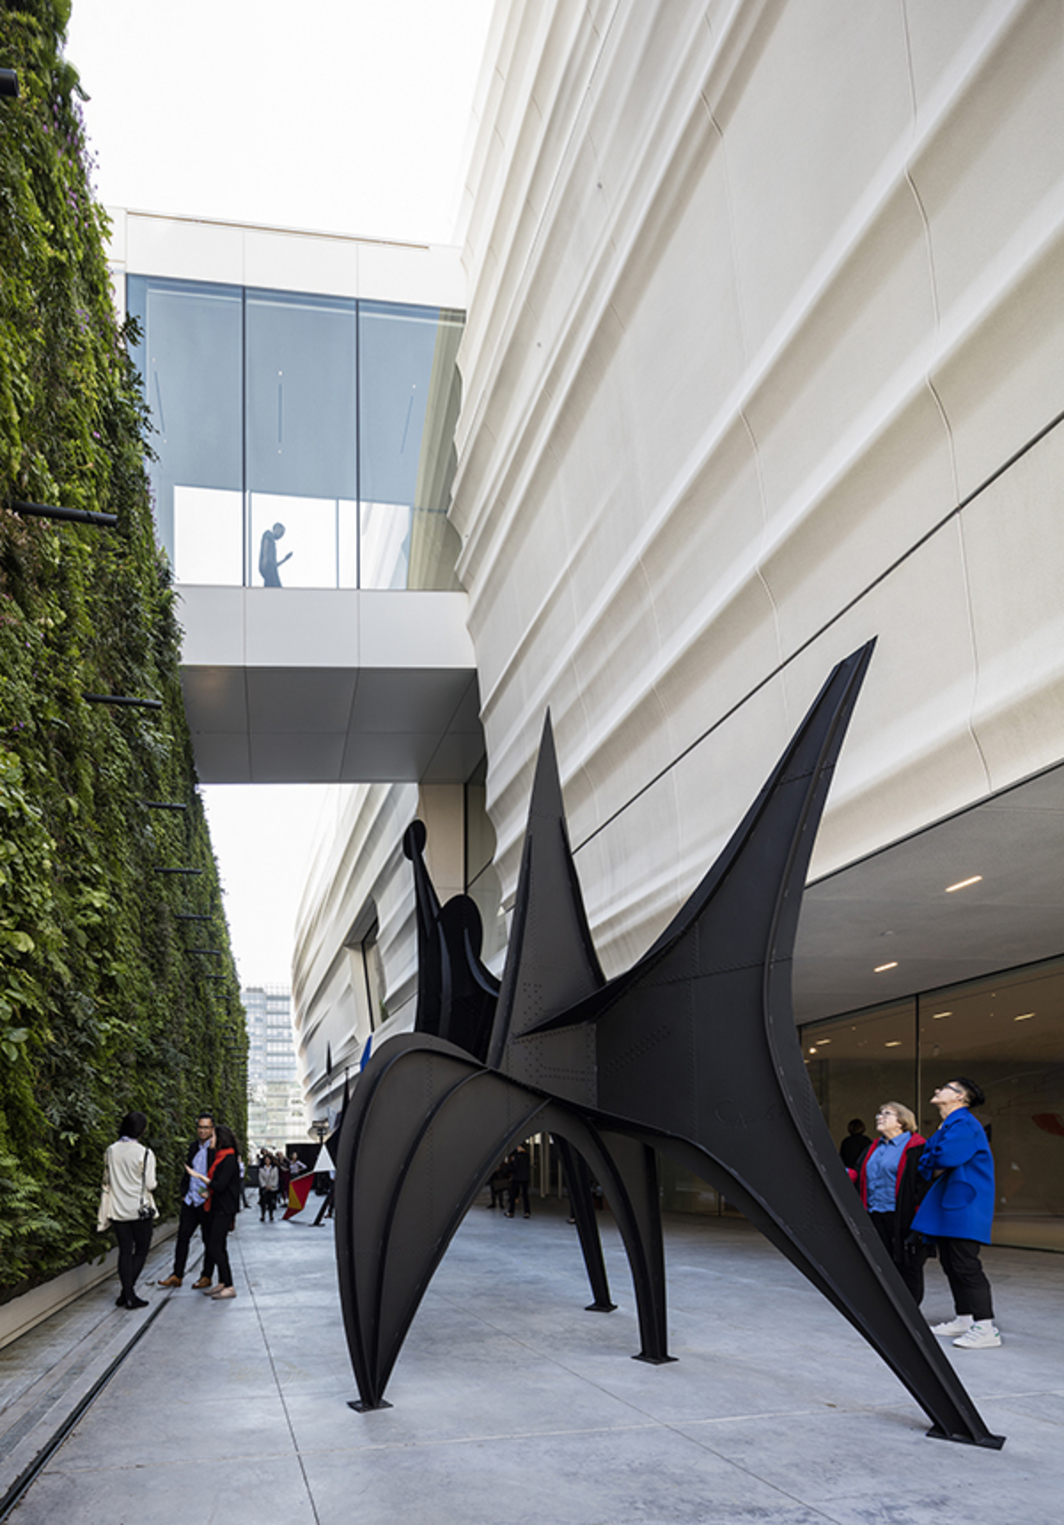 The Pat and Bill Wilson Sculpture Terrace at SF MOMA.  Alexander Calder, Maquette for Trois Disques (Three Disks), 1967. Photo: Henrik Kam.